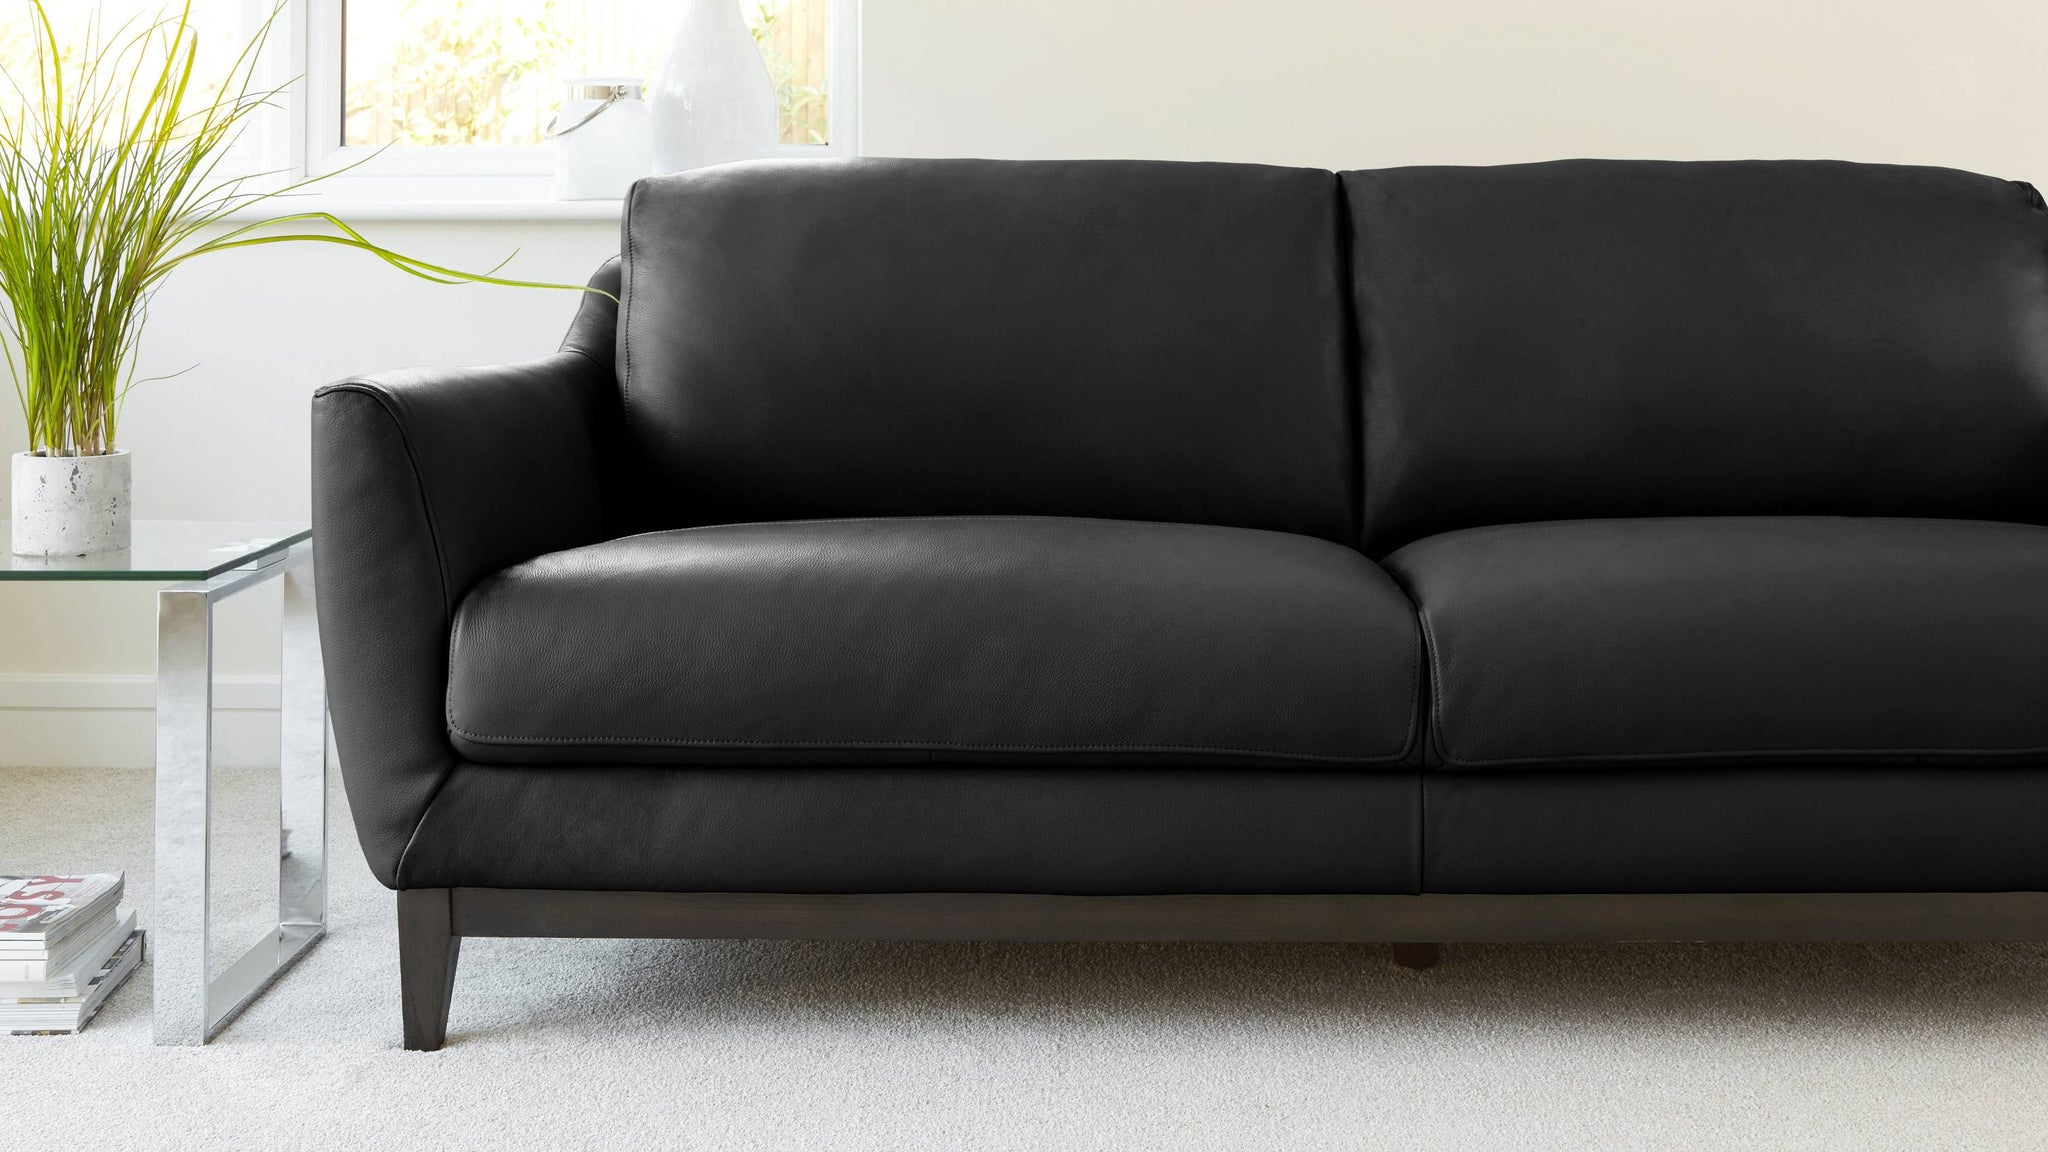 Black 2-3 Seater Leather Sofa